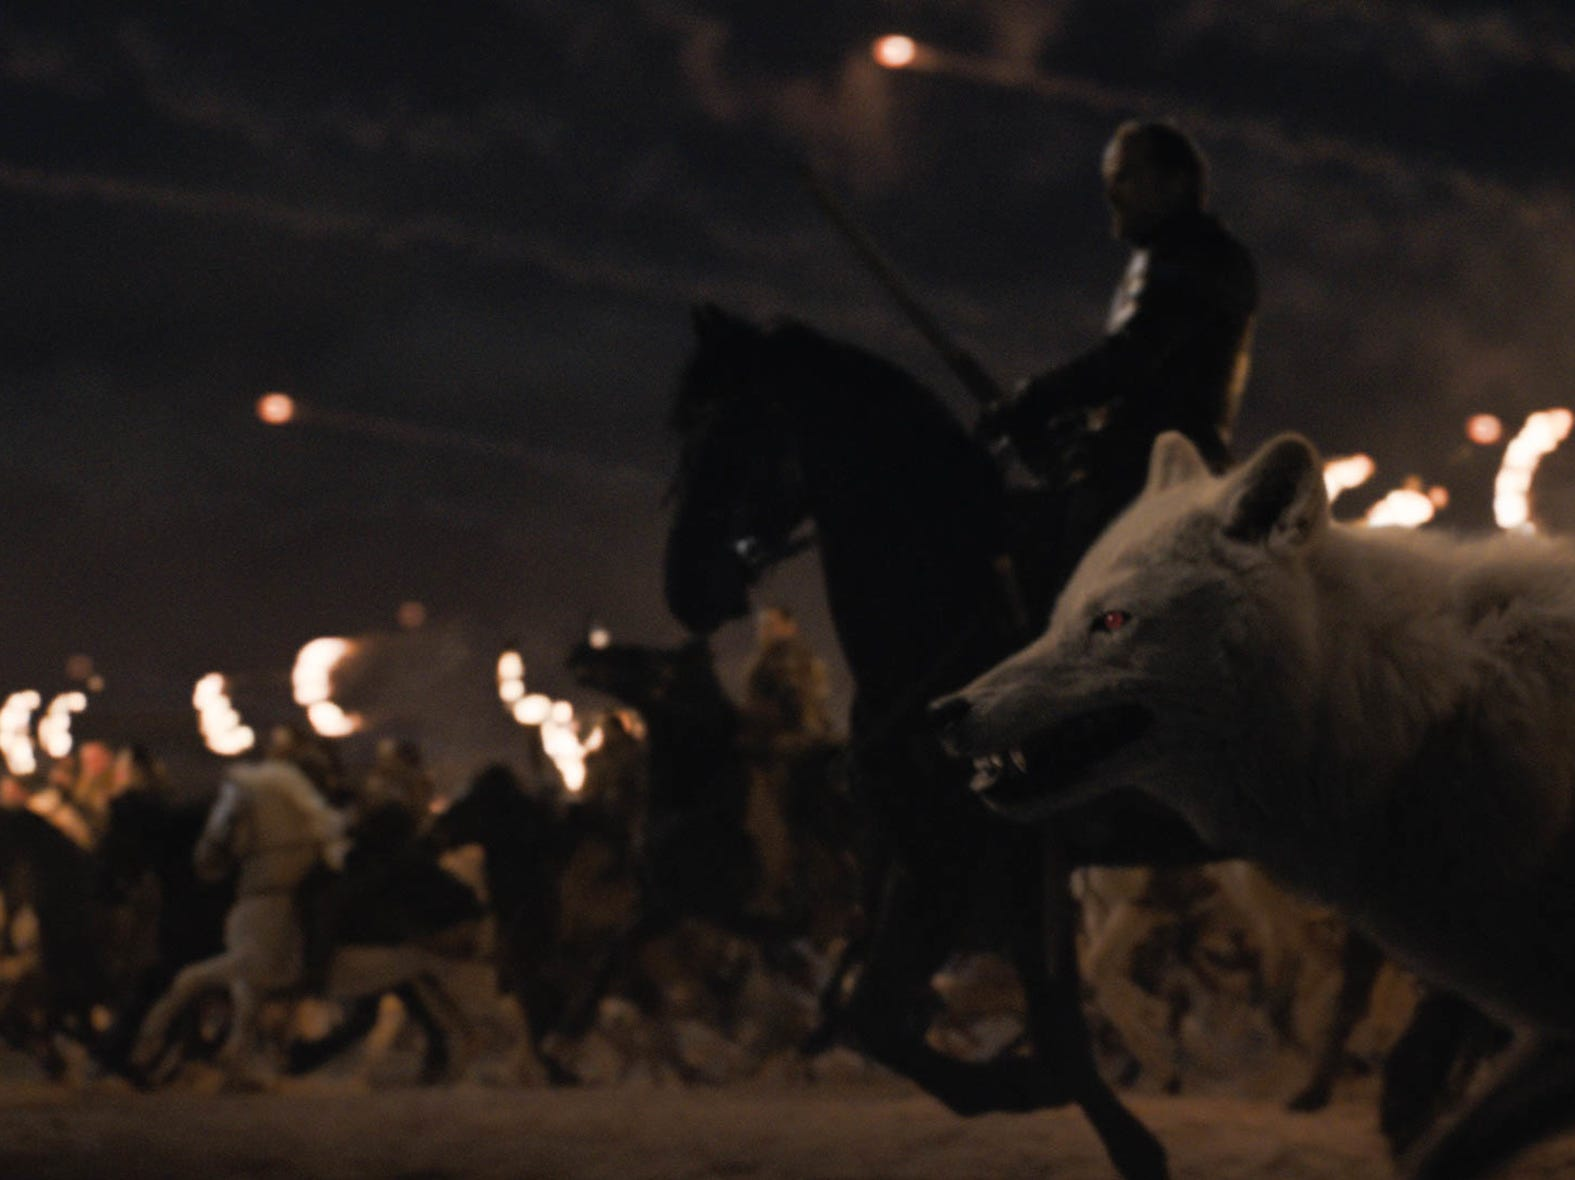 The Winterfell forces await the Night King's attack in Sunday's episode of 'Game of Thrones.'